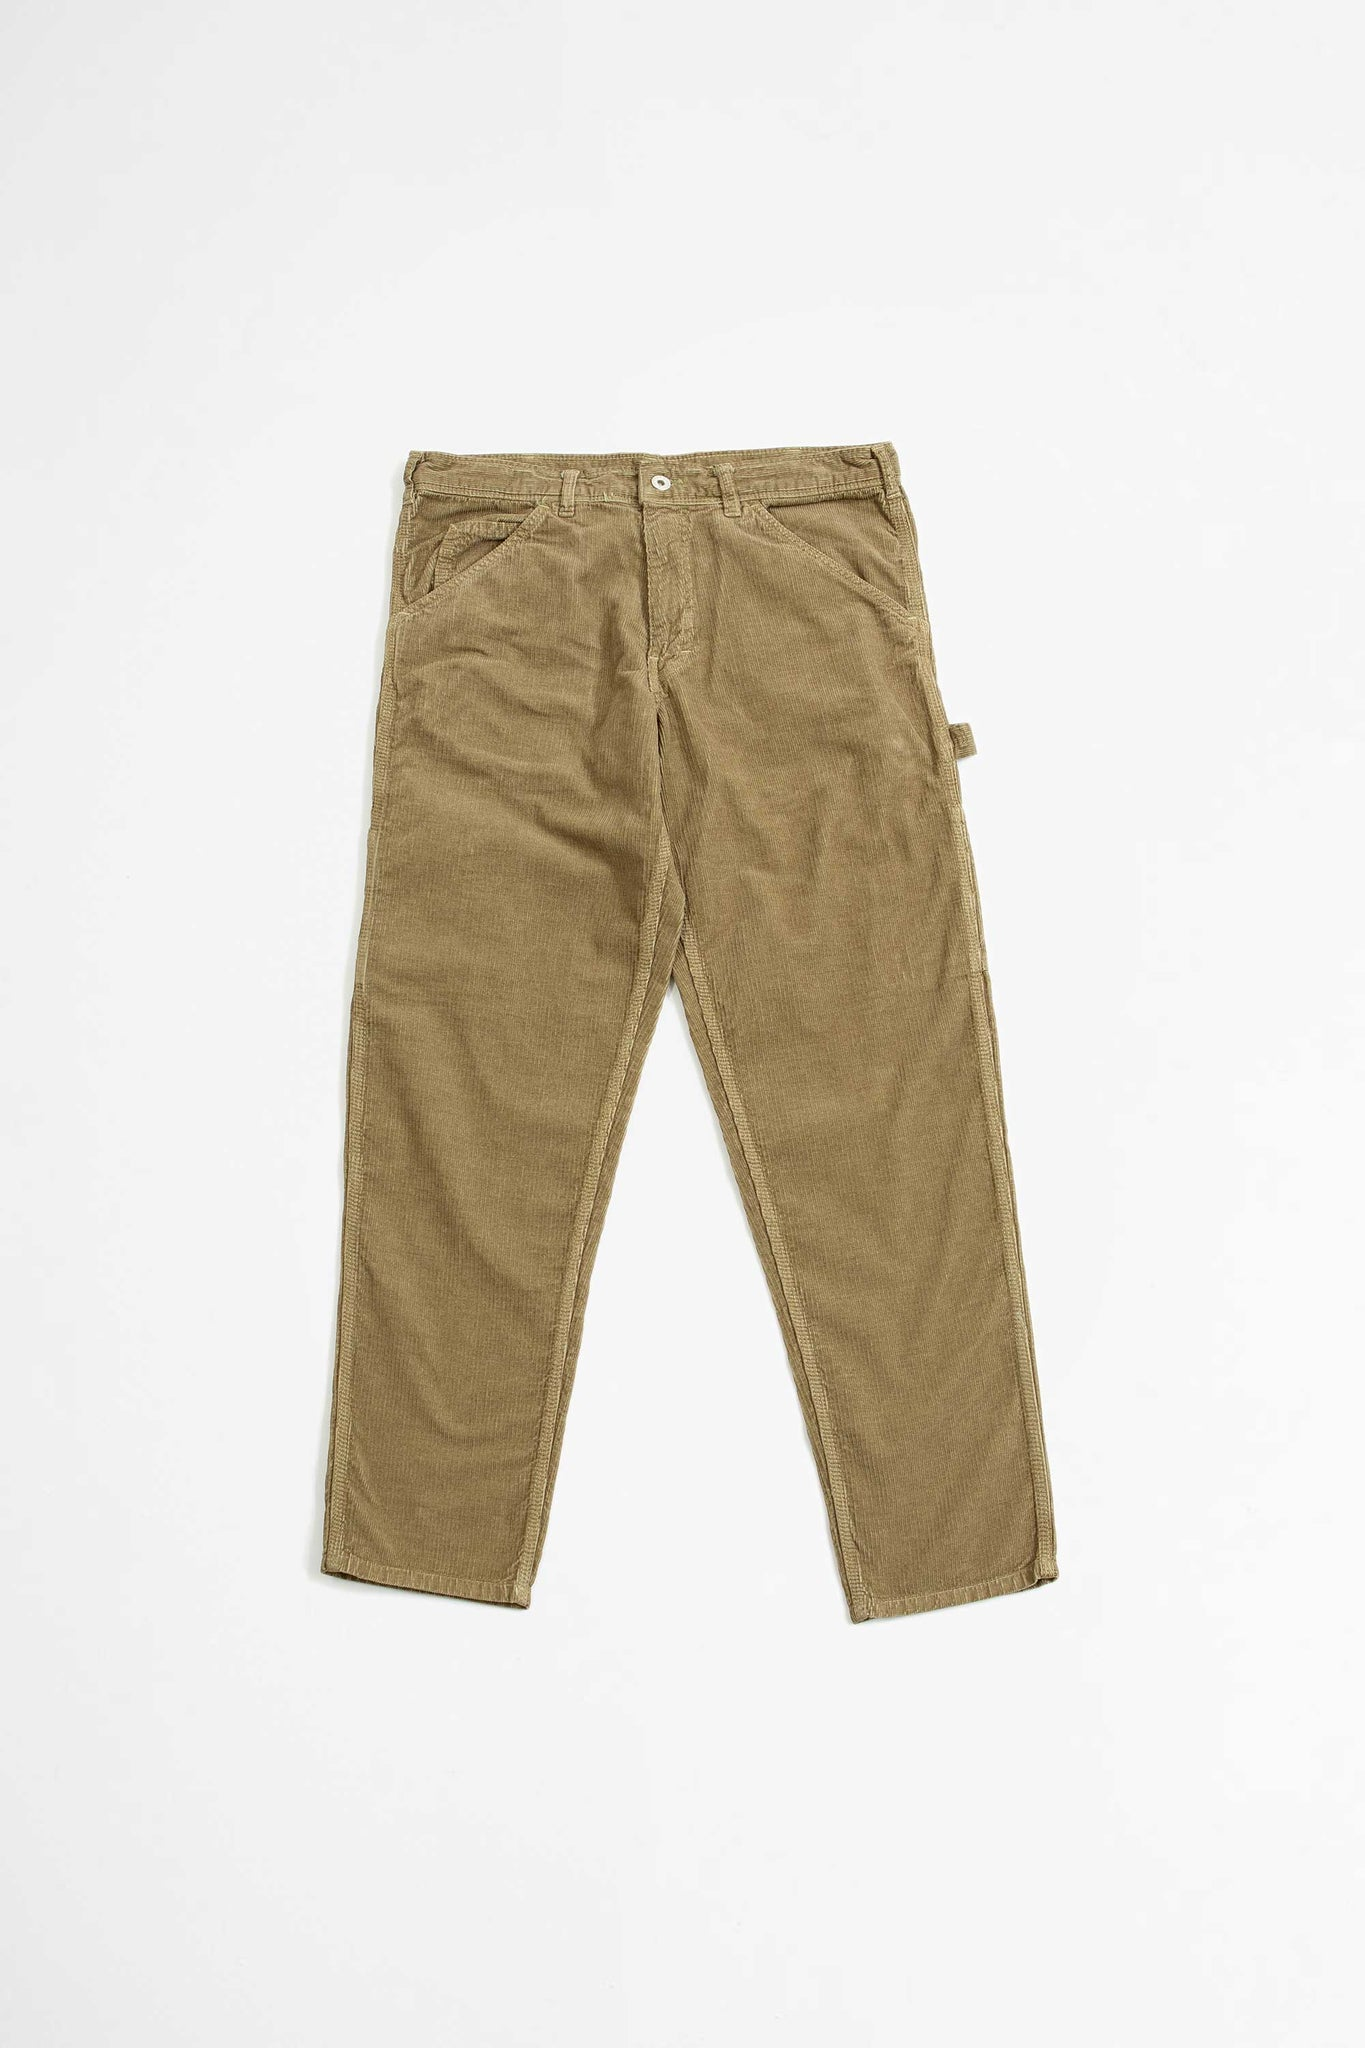 80s Painter pant khaki cord